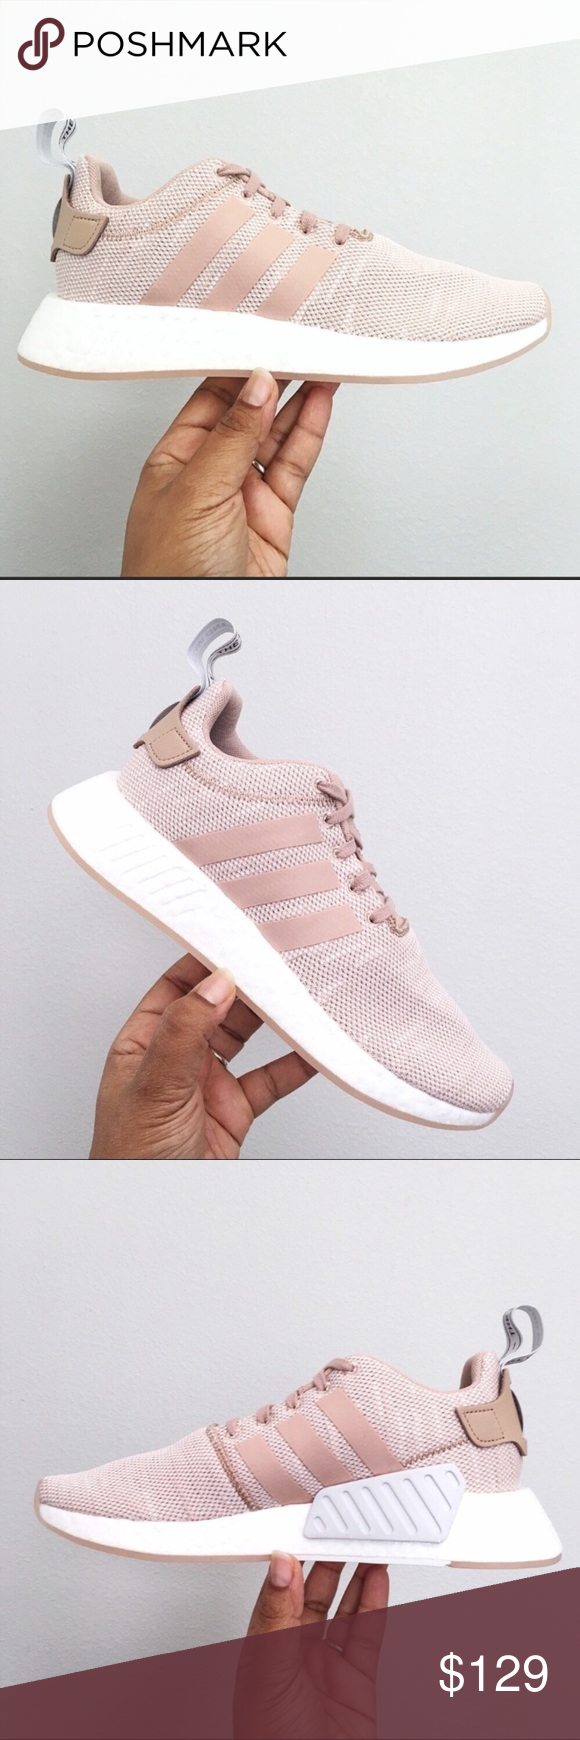 a94c11ca4 Adidas NMD R2 Ash Pearl Tan White Women s Size 9.5 Brand New in Box with Lid